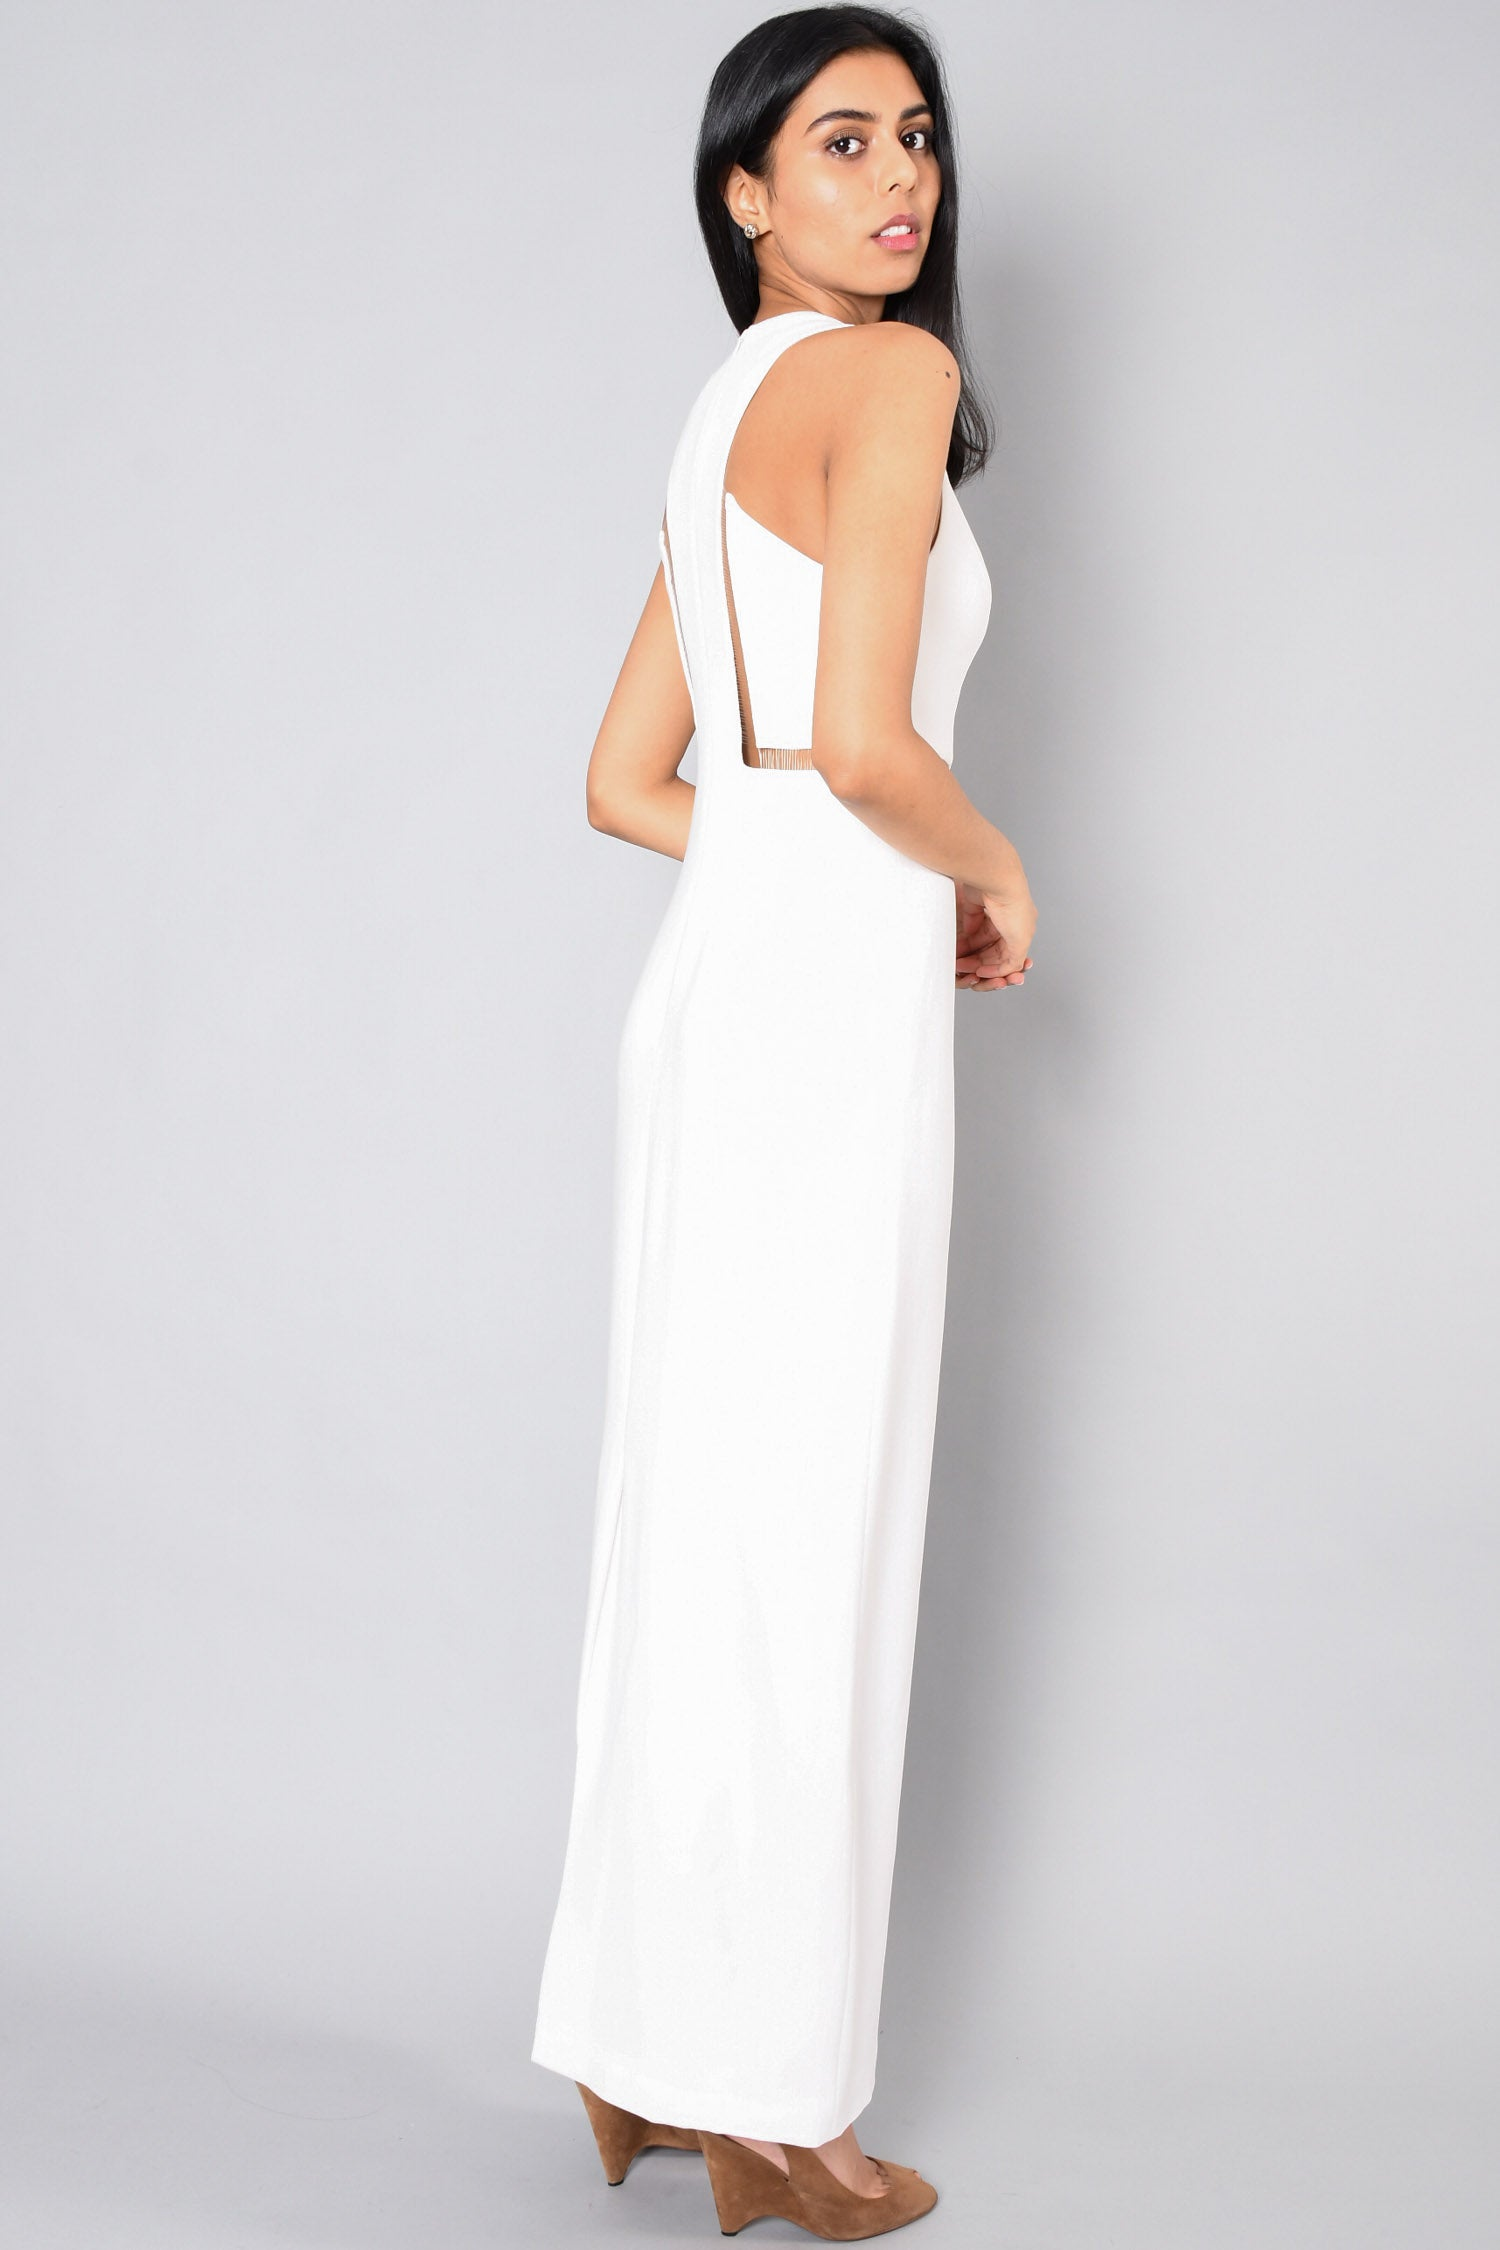 Alexander Wang White Sleeveless Gown Fishing Wire Detail Size 2